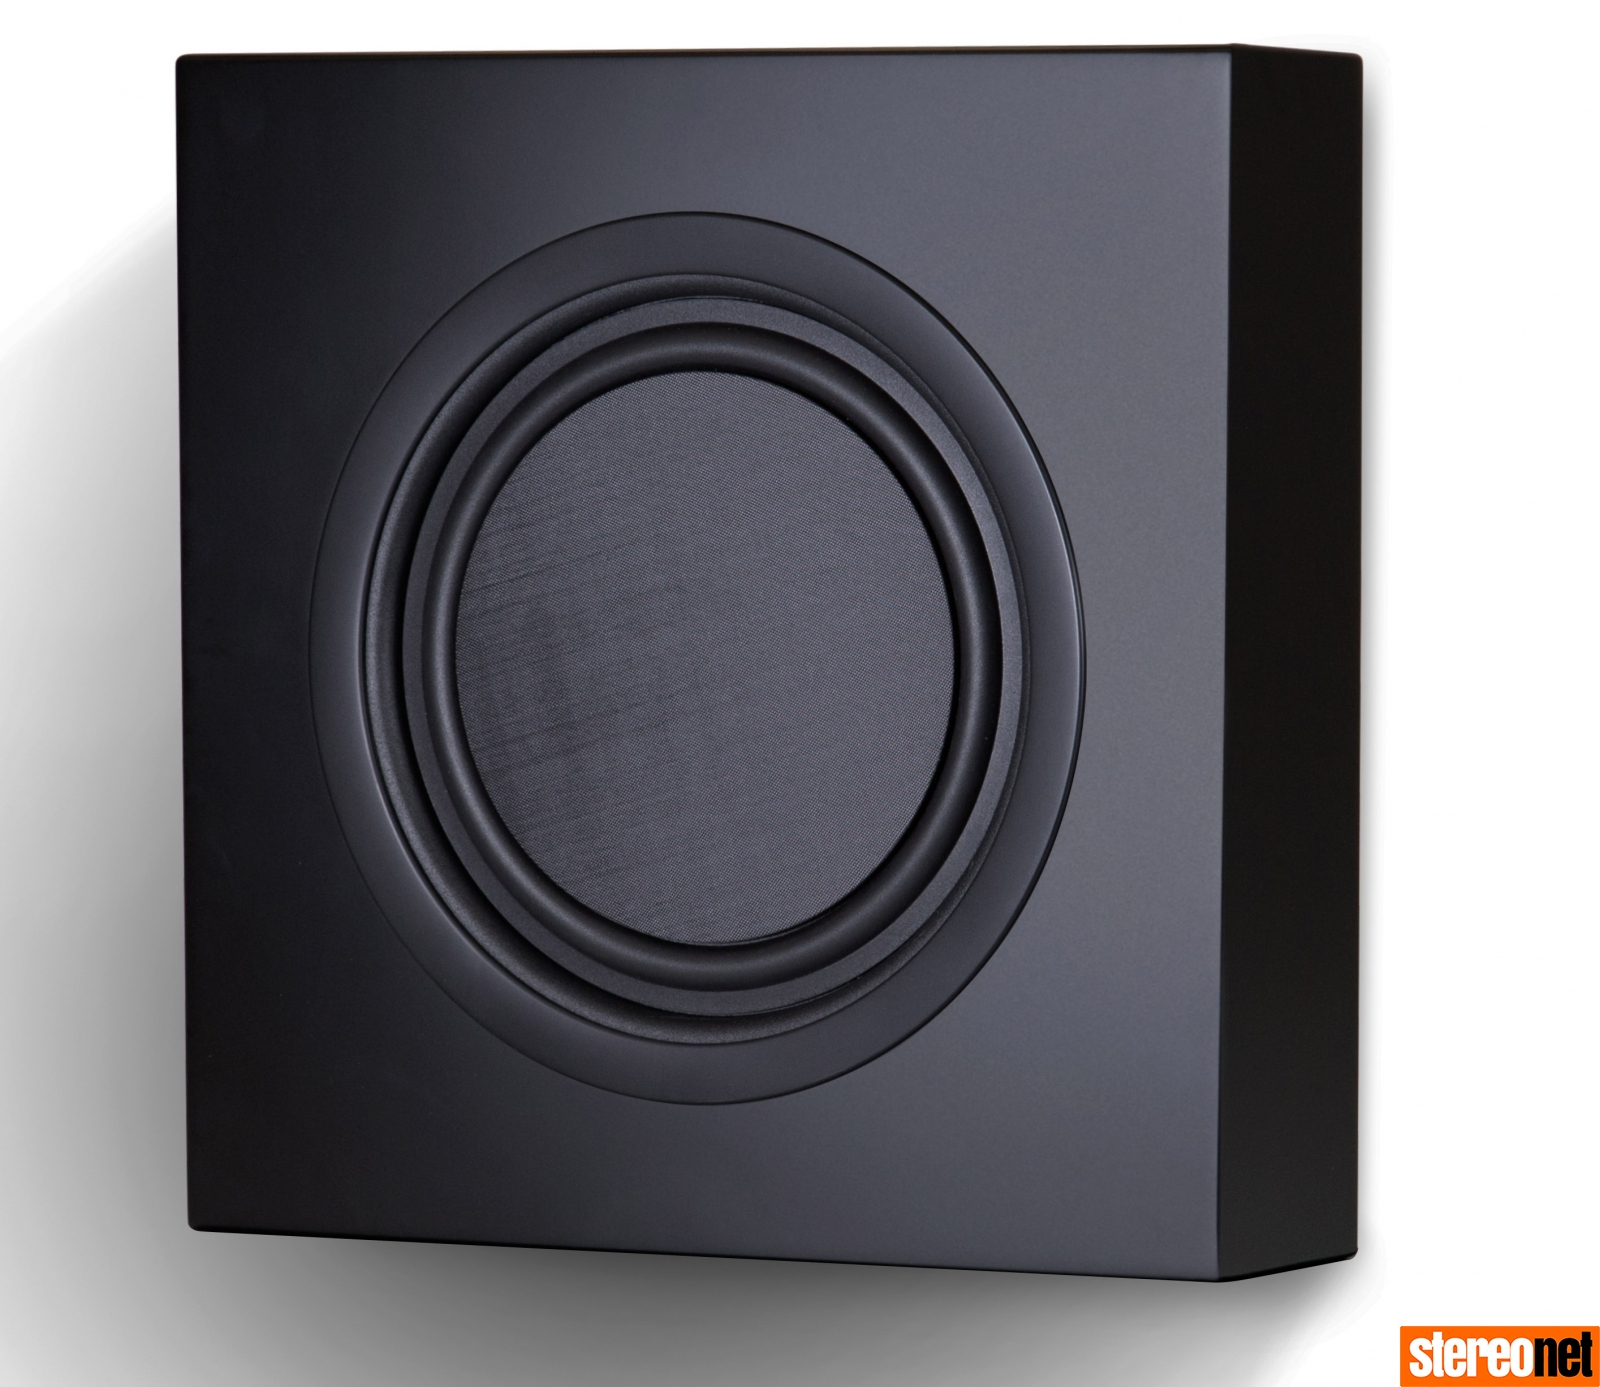 Psb Custom Install Loudspeaker Range Introduced At Cedia